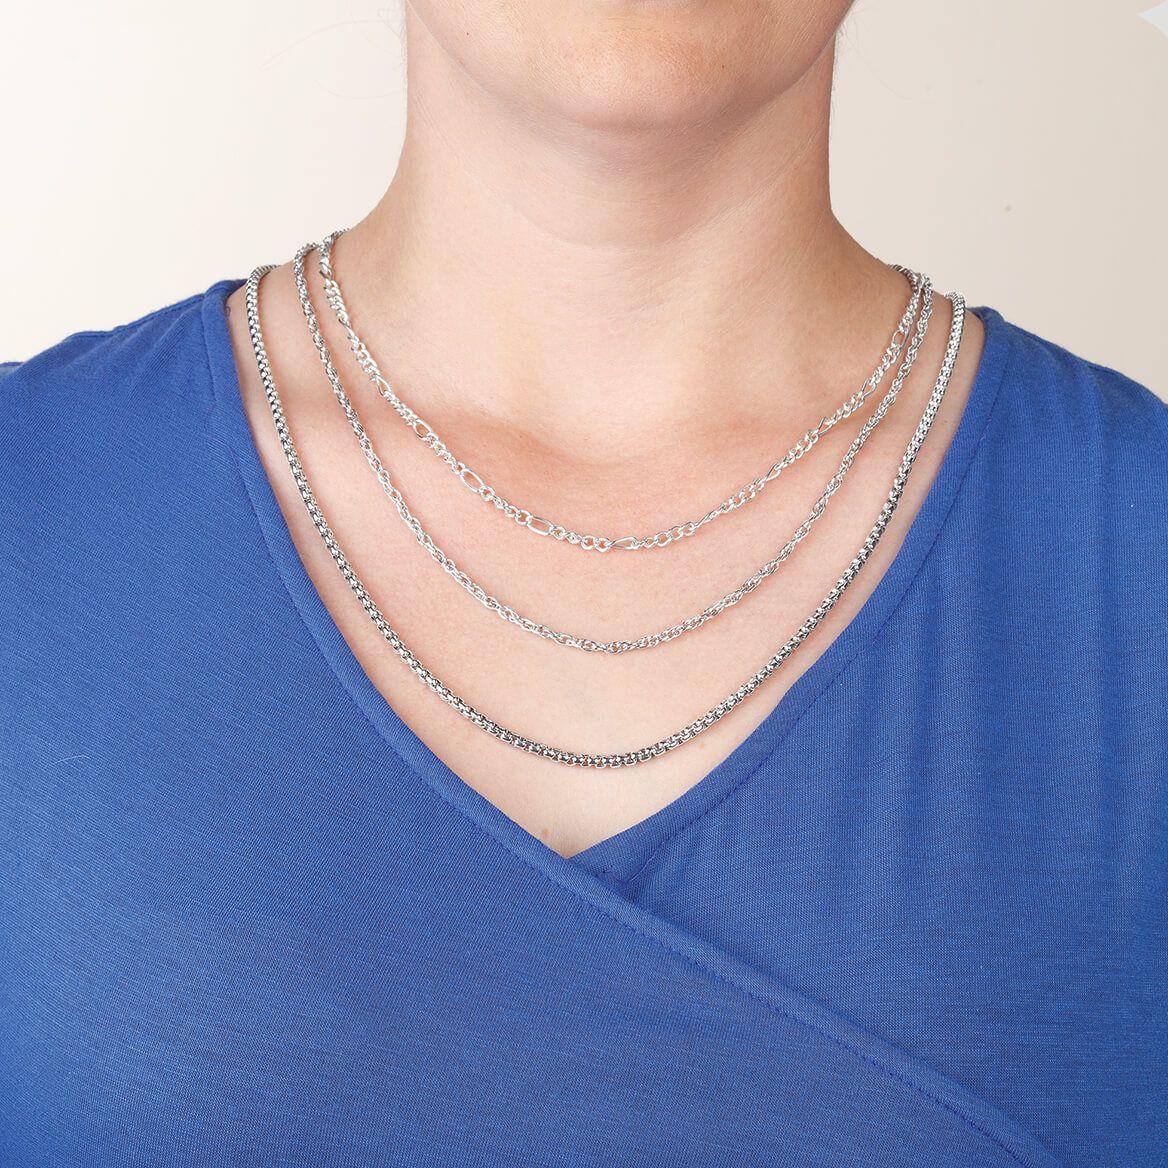 Layered Necklace Spacer with Magnetic Clasp 2-Pc. Set-370953